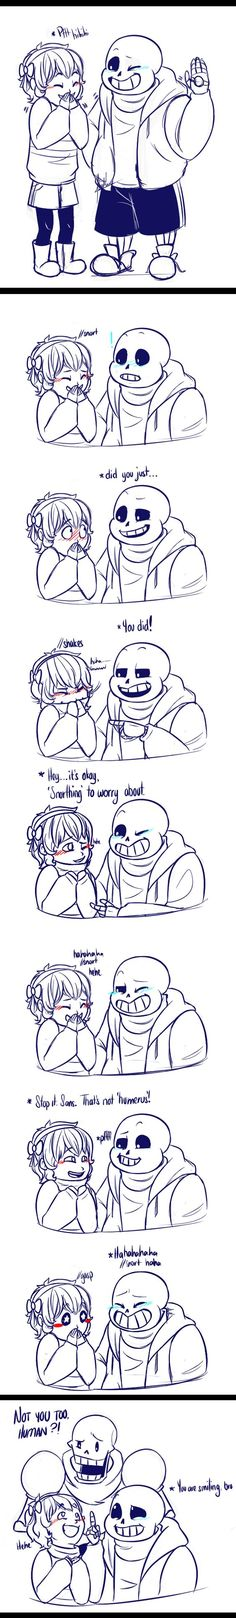 'Insert funny title here' by Noire73 on DeviantArt: